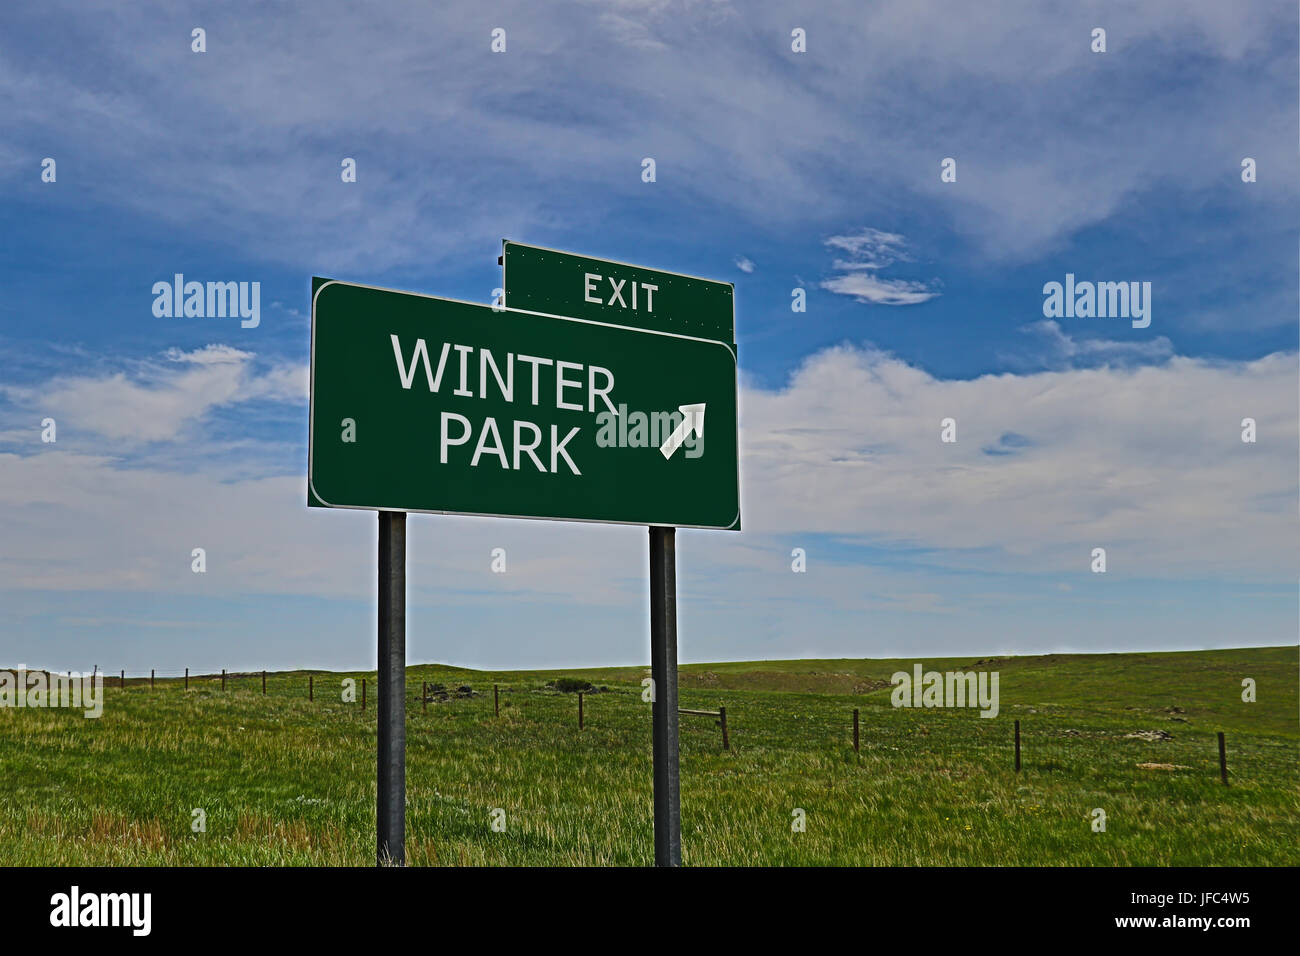 US Highway Exit Sign for Winter Park - Stock Image